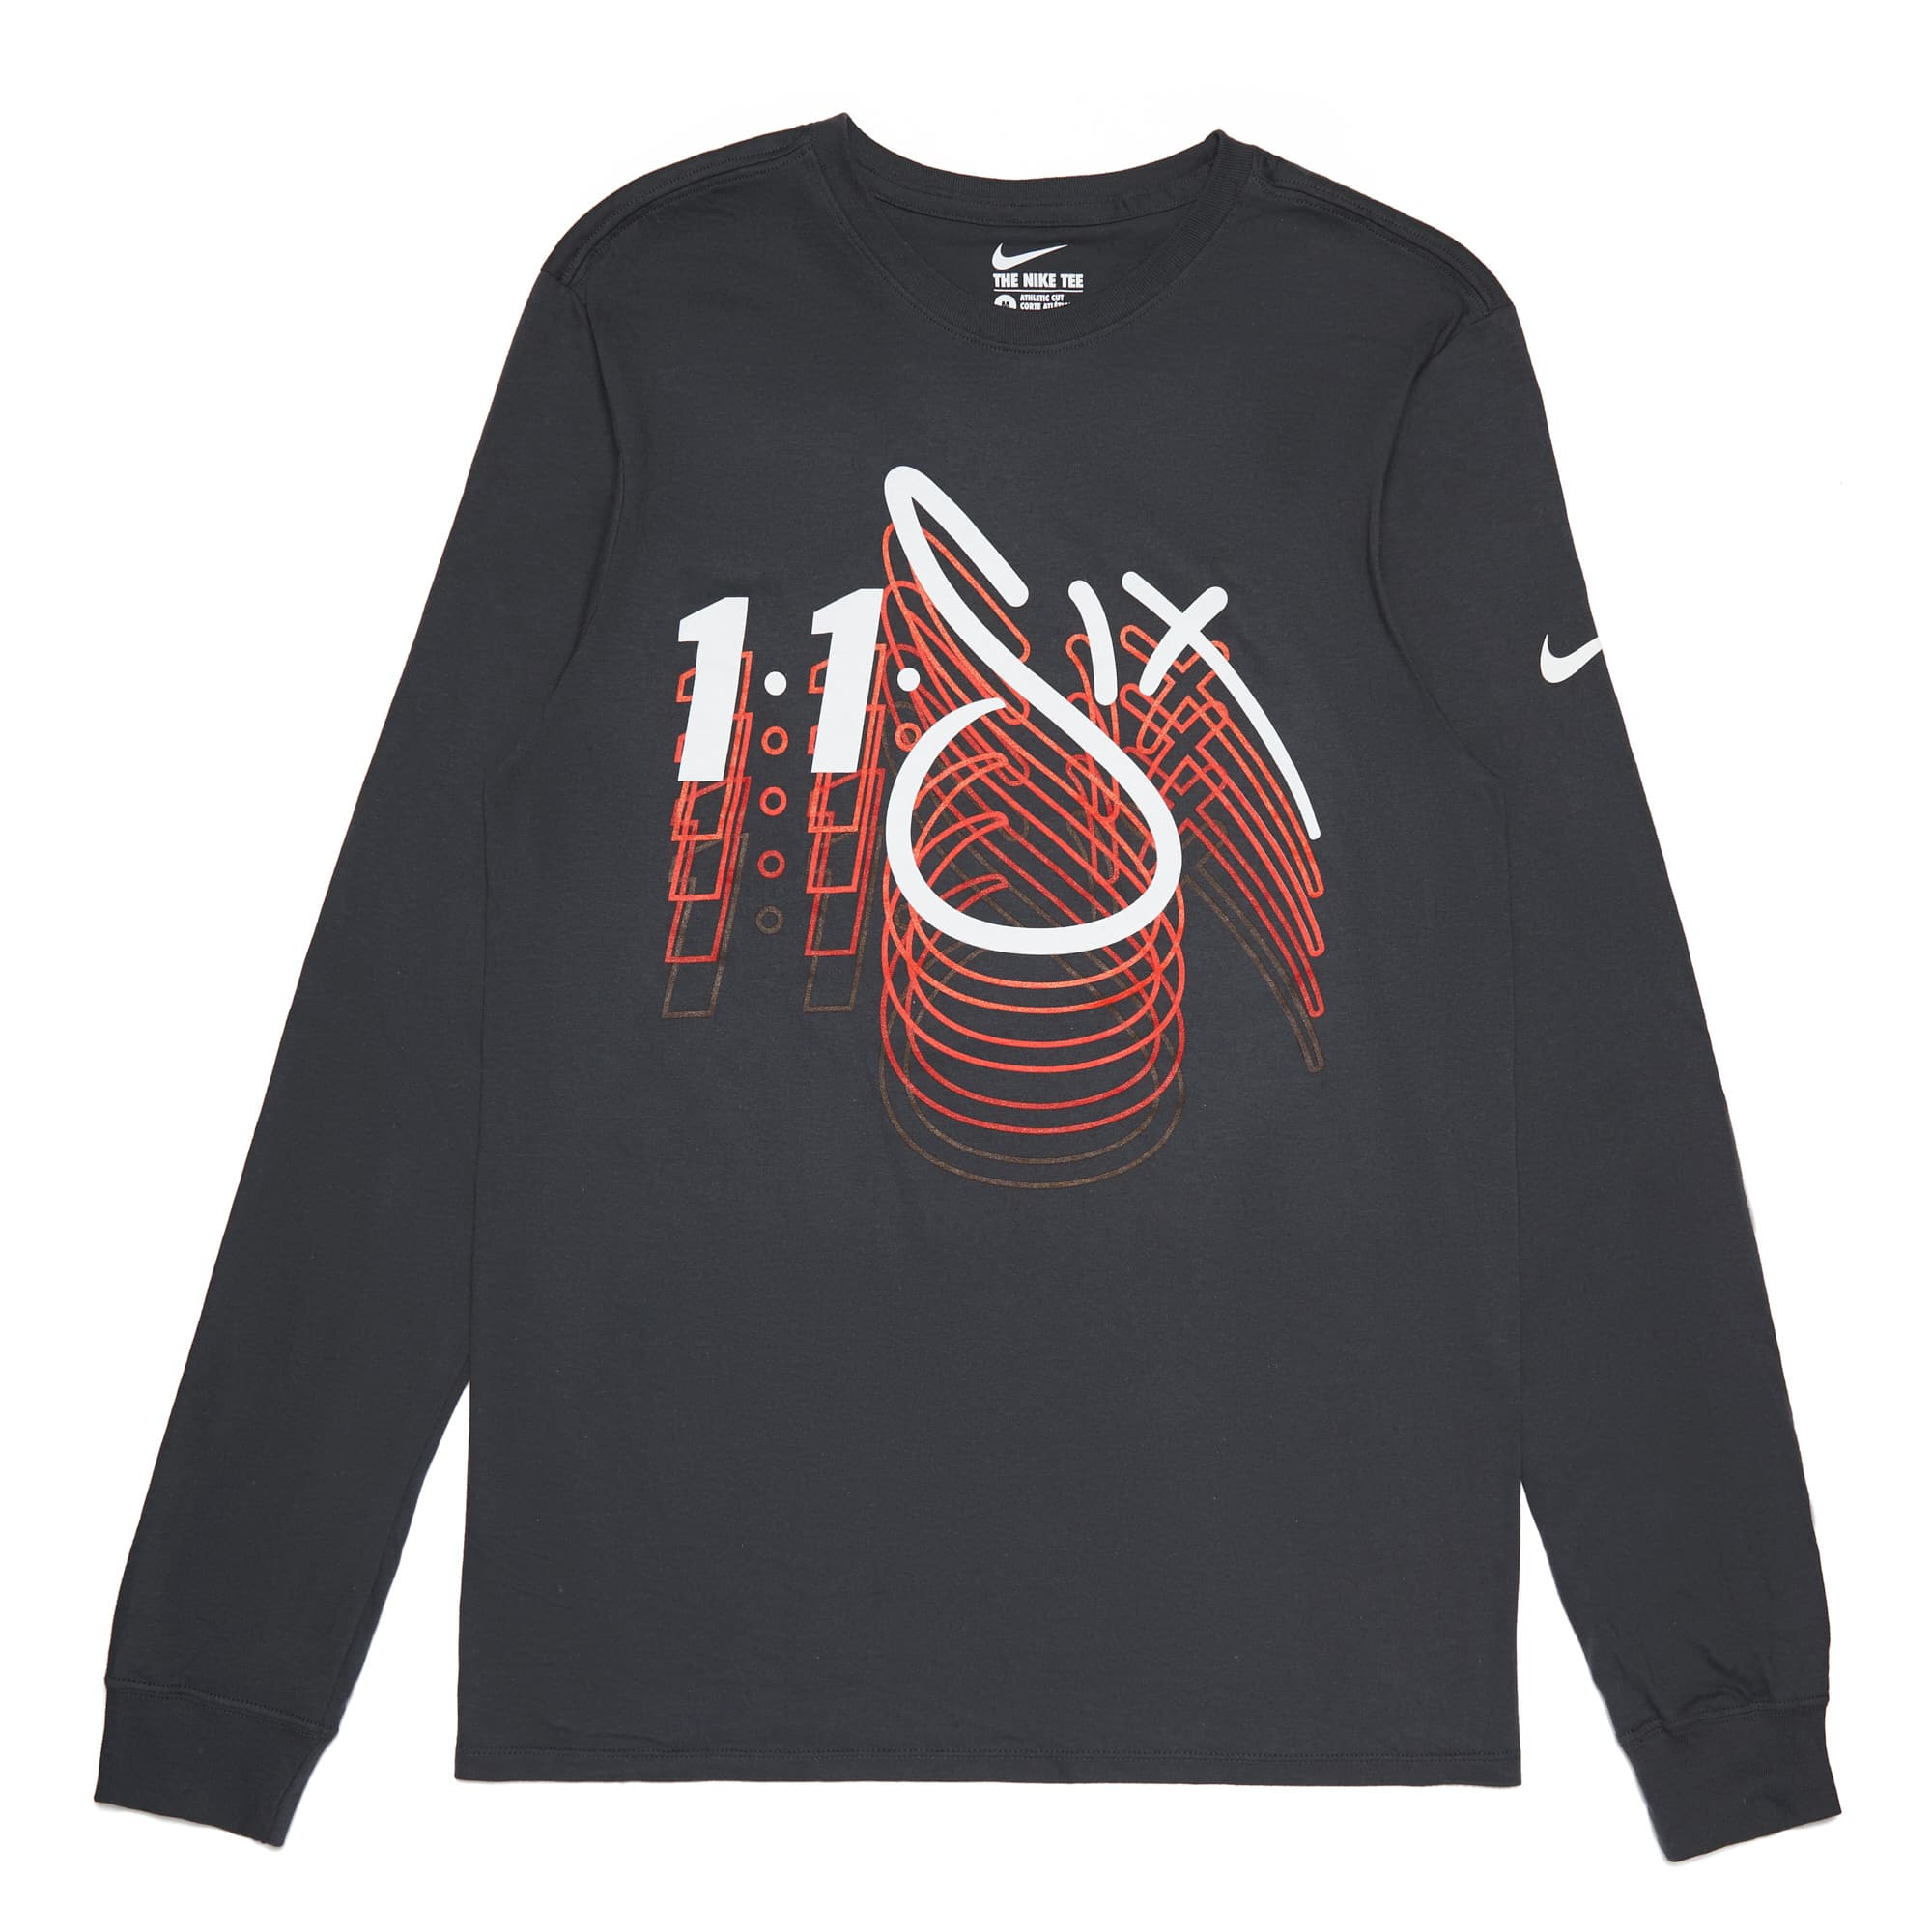 Reach x Nike Core Long Sleeve Tee - Charcoal